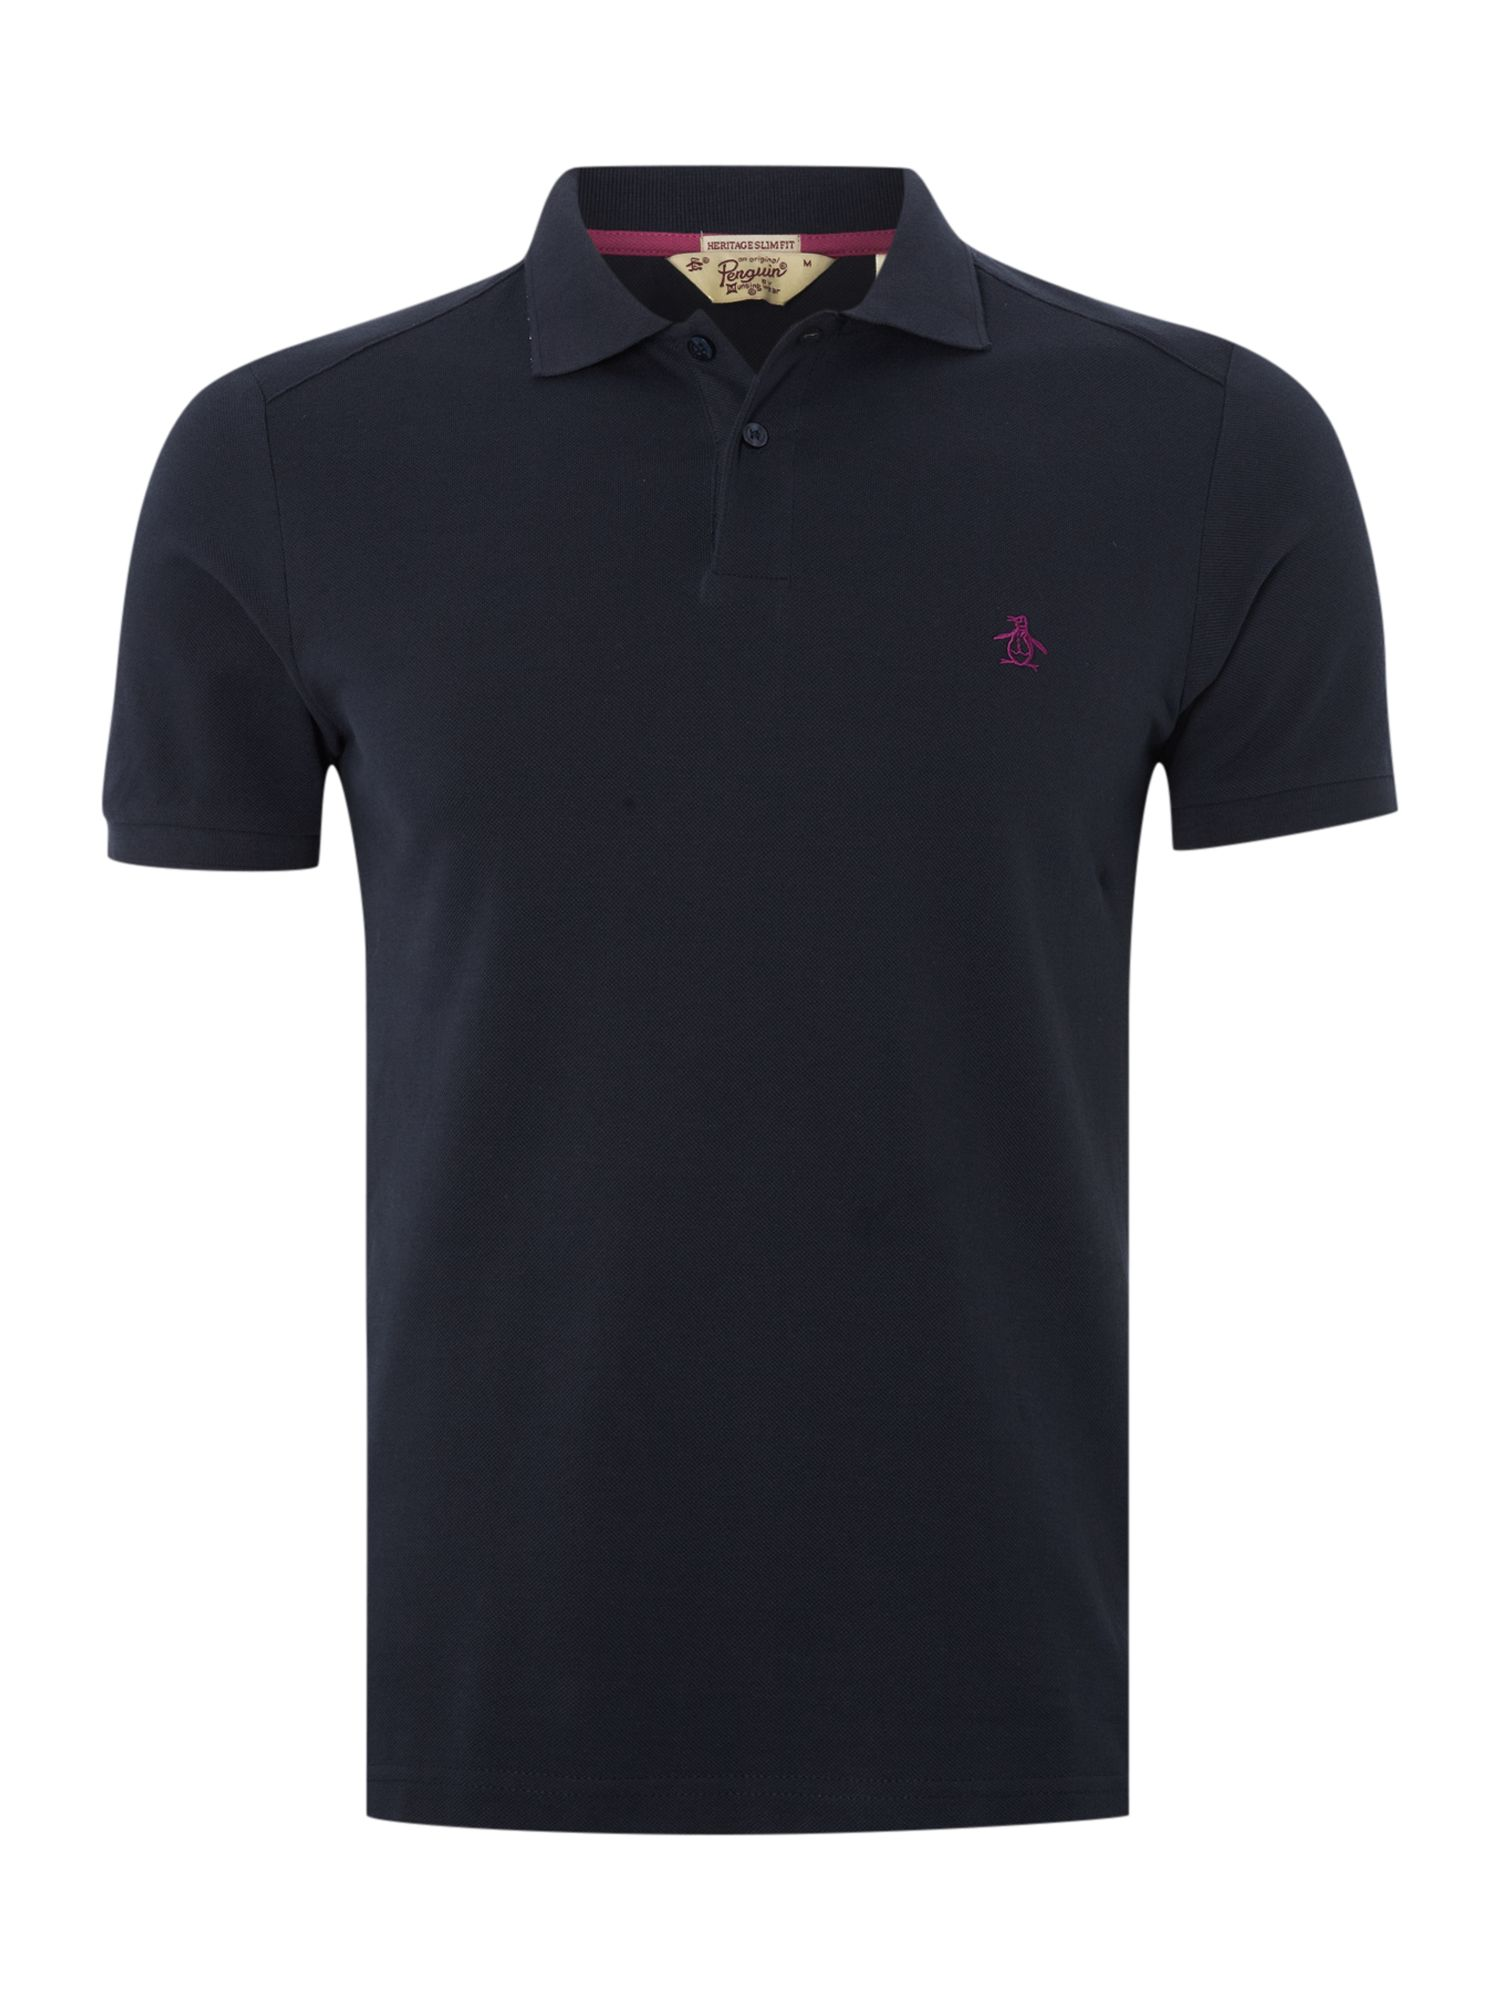 Regular fit classic daddy polo shirt